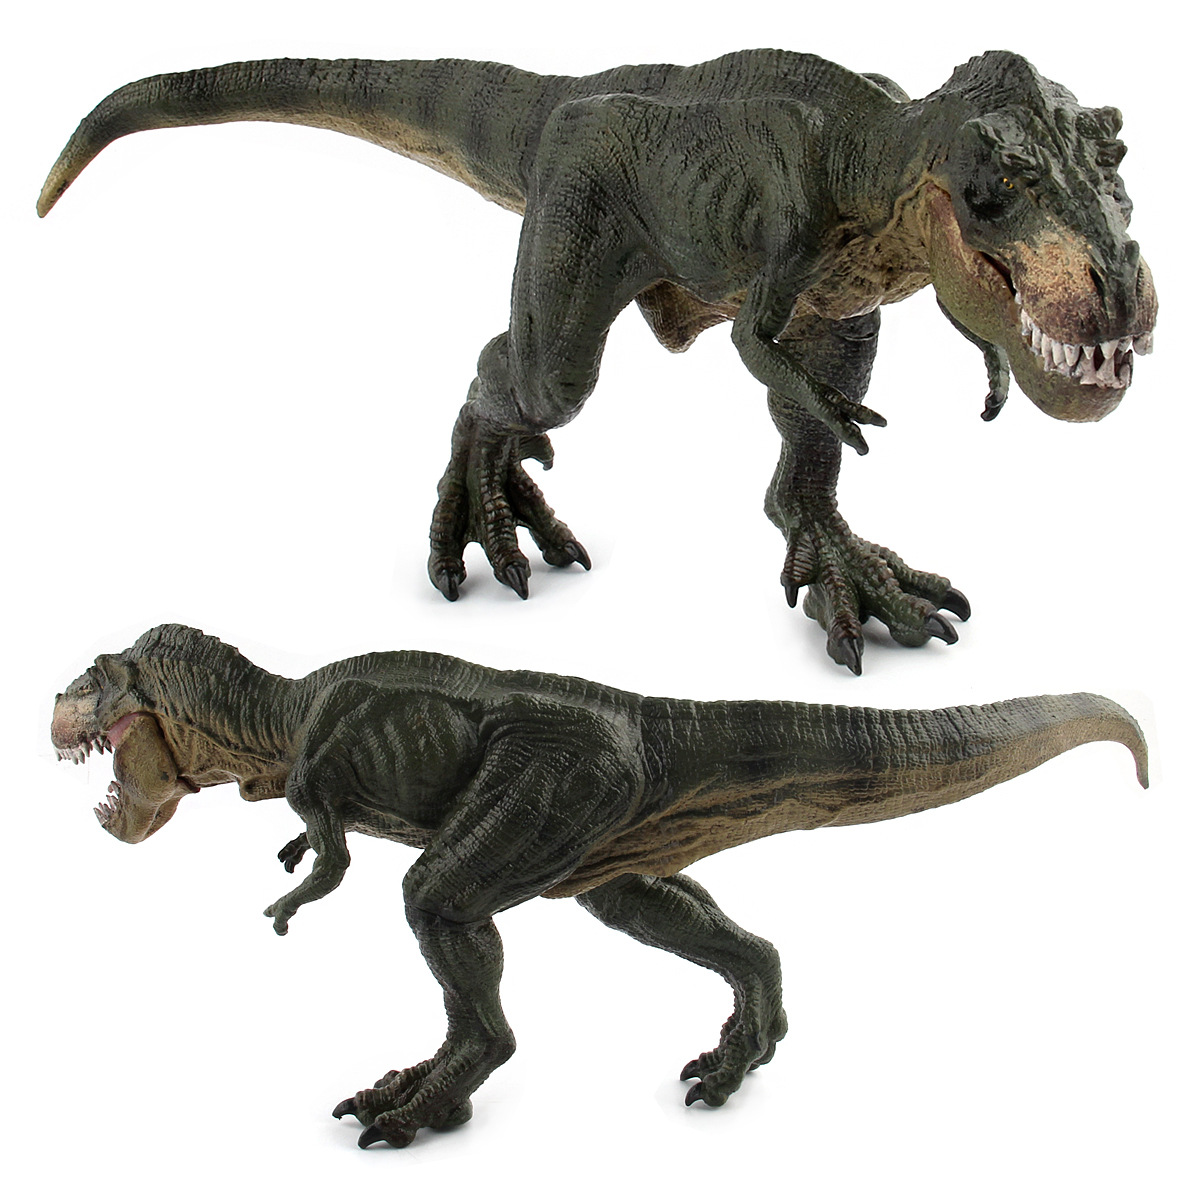 Action&Toy Figures Jurassic Tyannosaurus 32CM Dragon Dinosaur Toys Plastic Dolls Animal Collectible Model Furnishing Toy Gift F3 wiben jurassic pterosauria dinosaur toys action